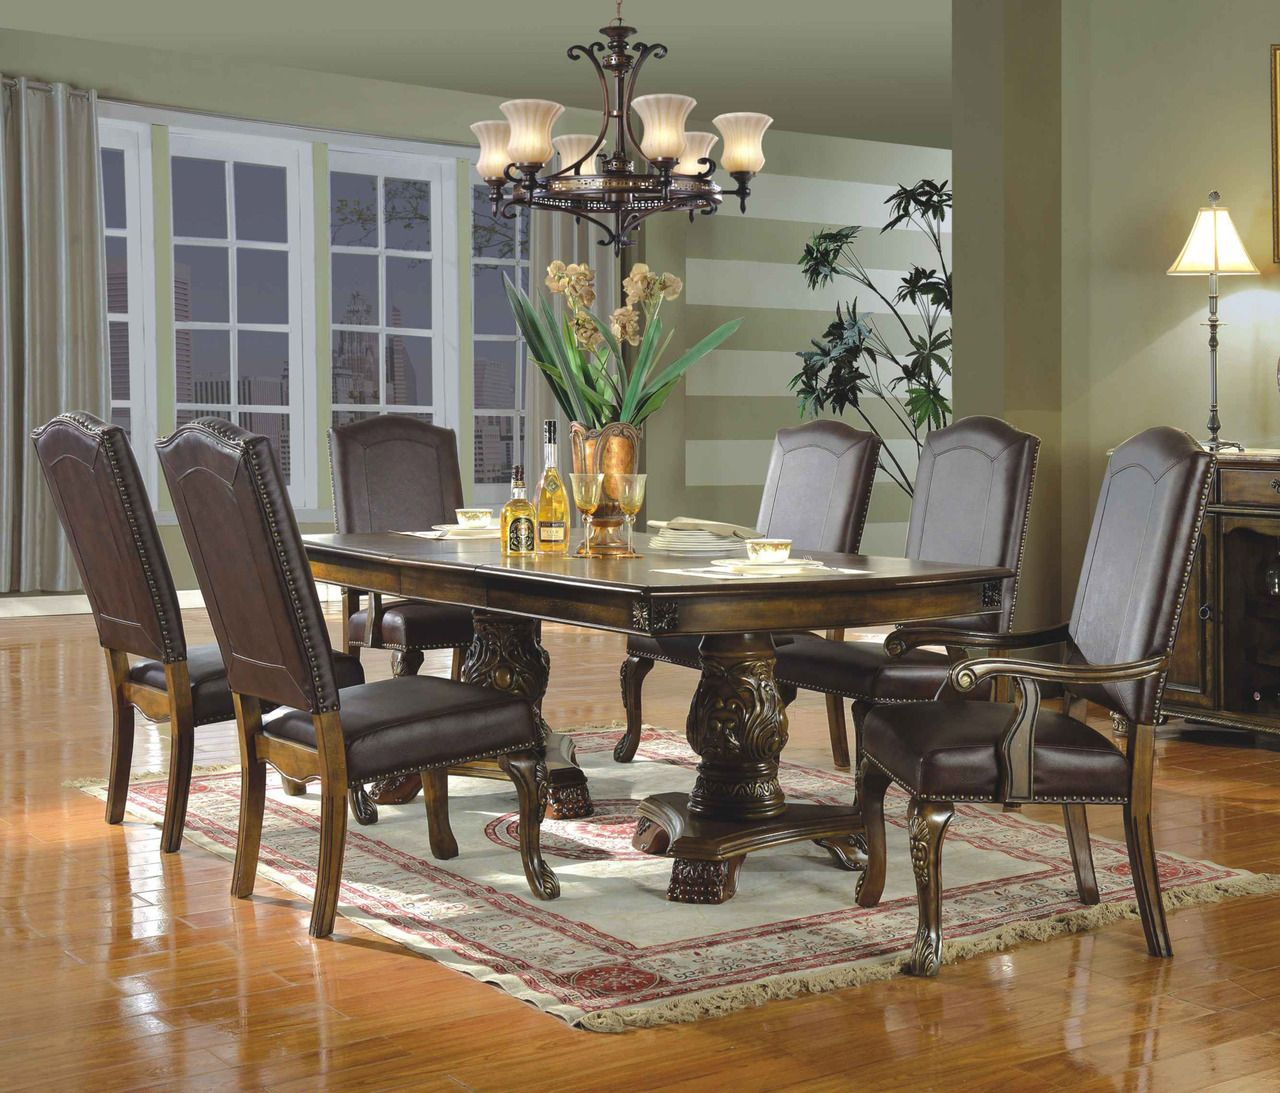 Allen Park 91 Brown Cherry Extendable 7 Pc Dining Table Set Stylish Dining Room Furniture Dining Table Formal Dining Room Sets